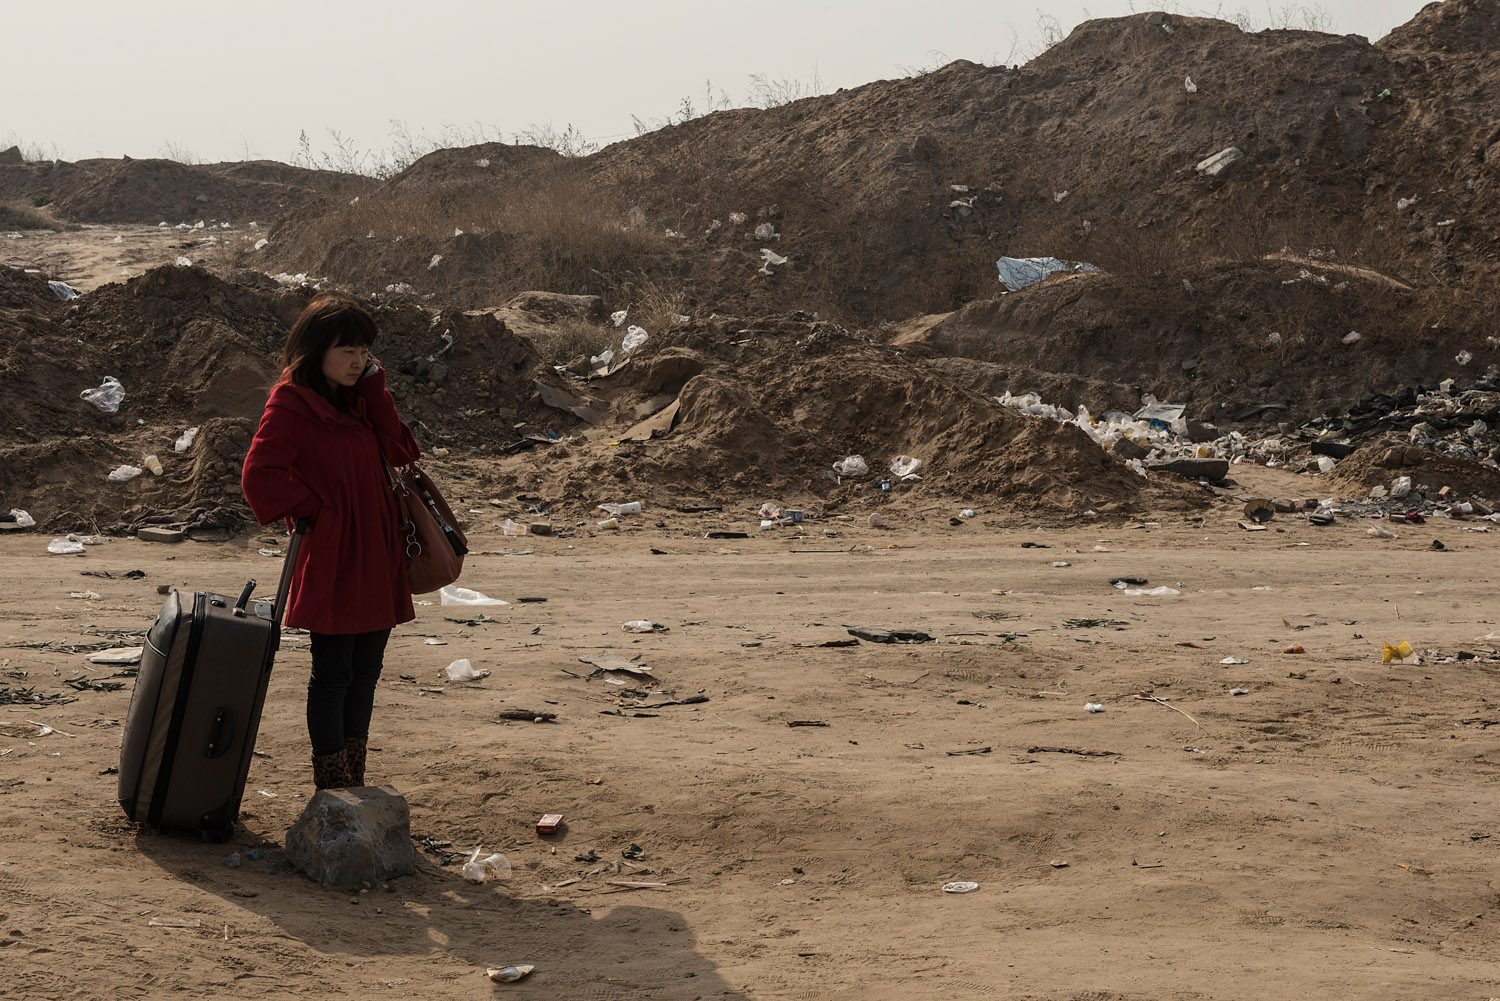 A woman has just arrived for a visit at Foxconn factory city on the outskirts of Zhengzhou. She is calling her boyfriend working on an I-phone assembly line. She might join the workers' ranks.